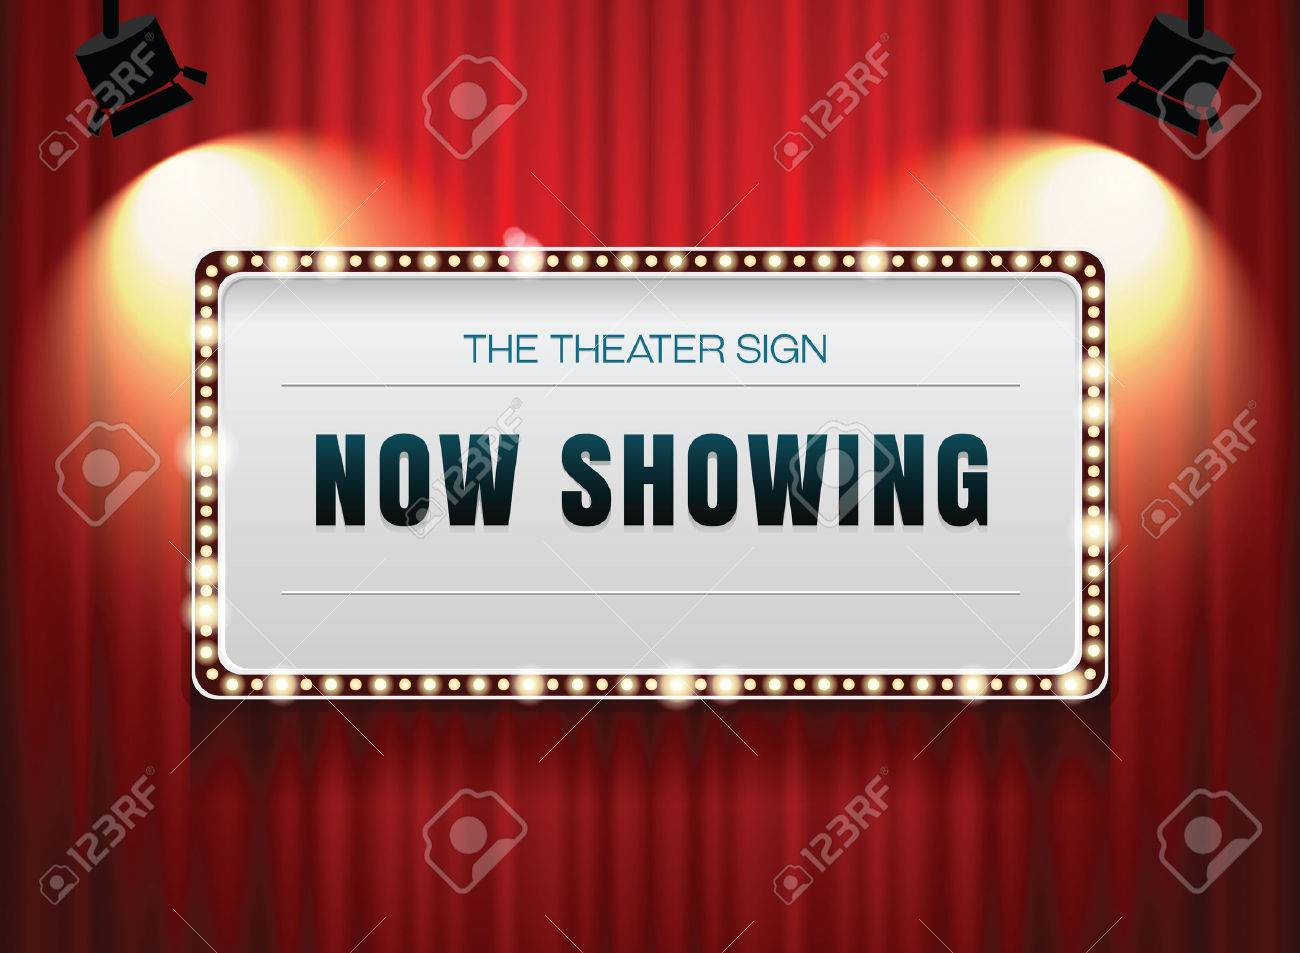 theater sign on curtain - 52582115